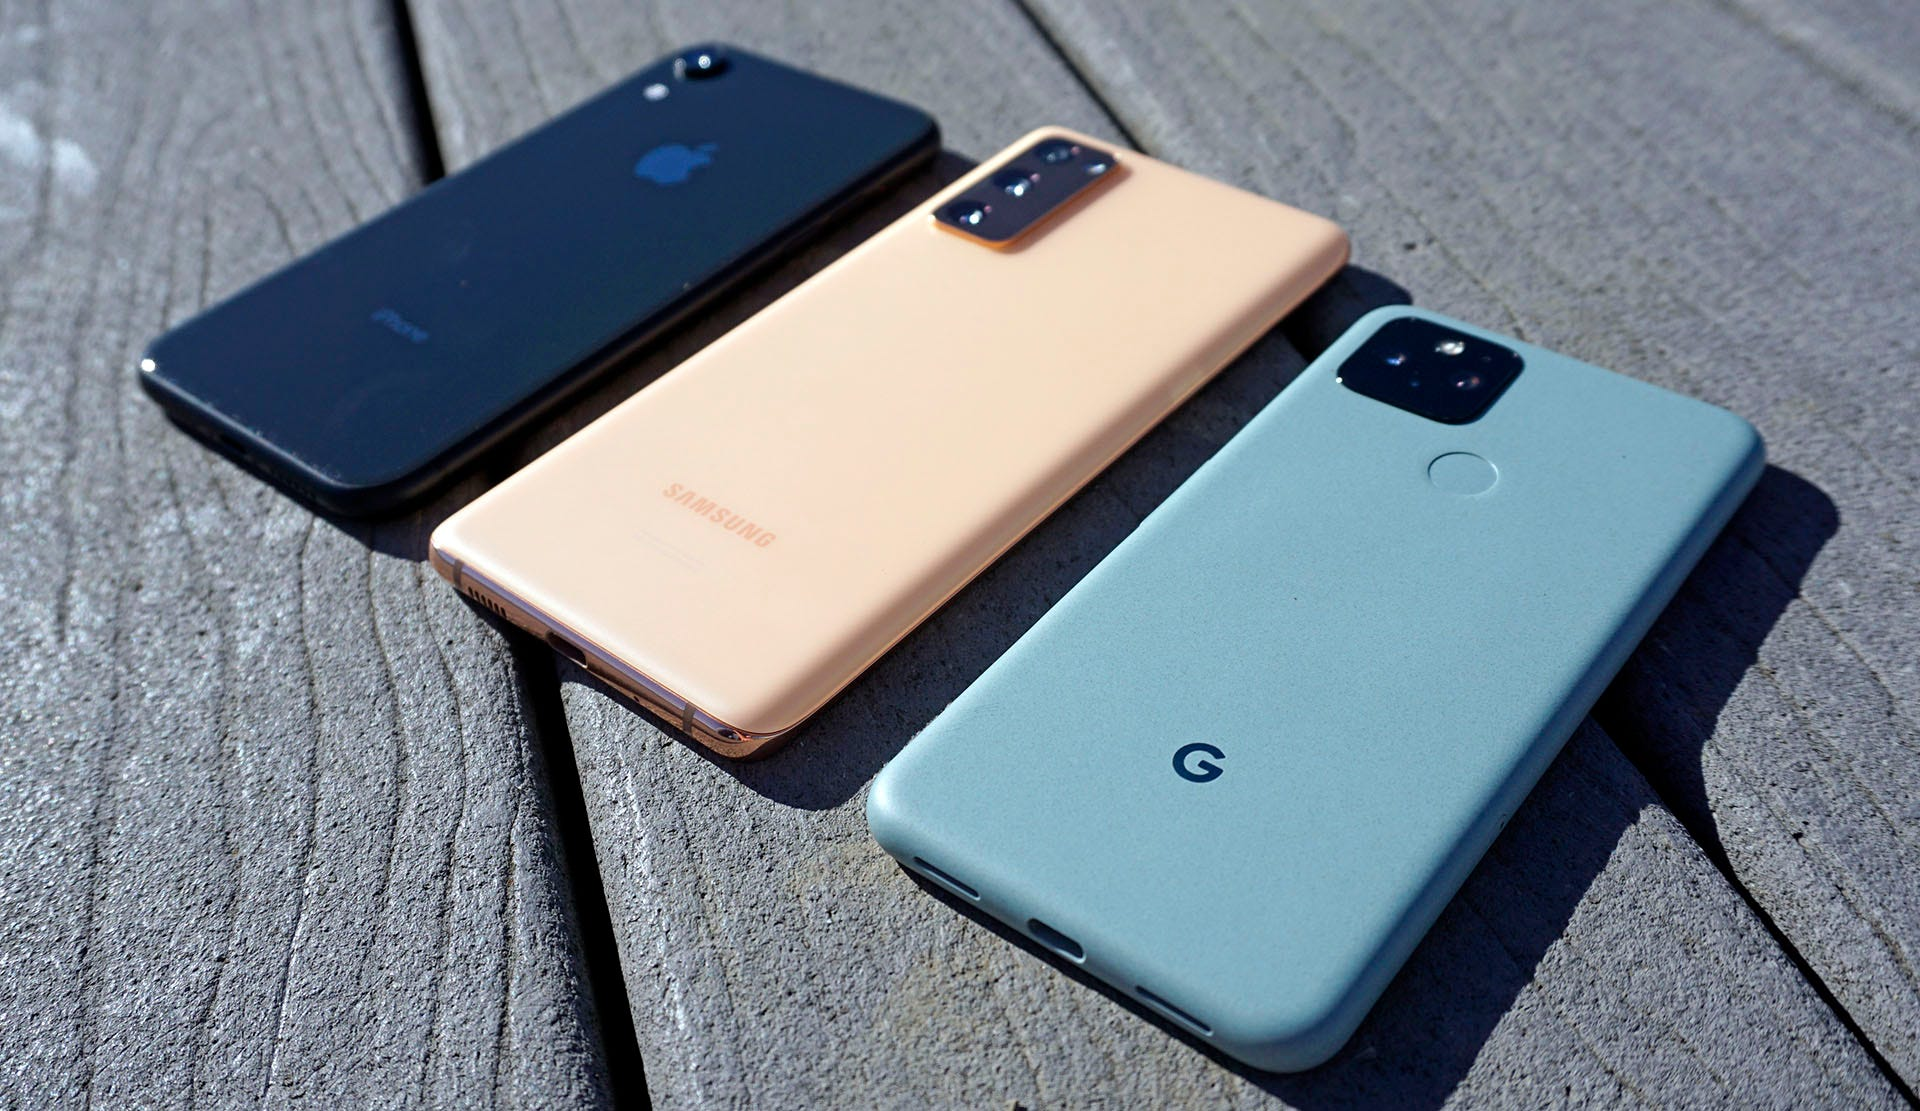 Comparing size: iPhone XR, Galaxy S20 FE, and Pixel 5, in a row on wood